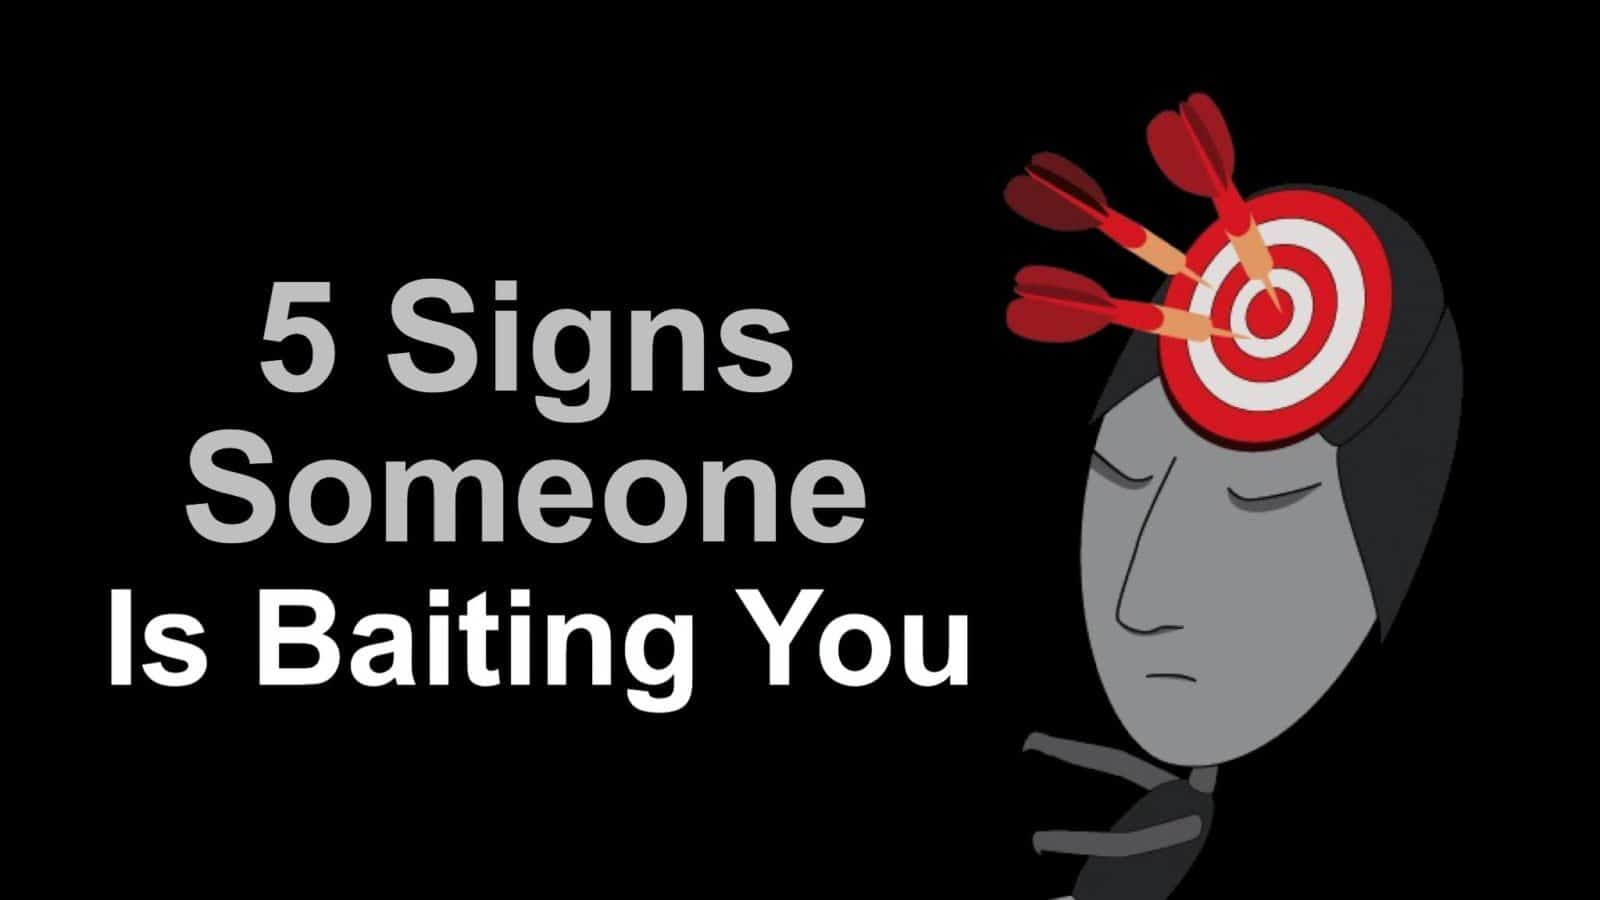 5 Signs Someone Is Baiting You